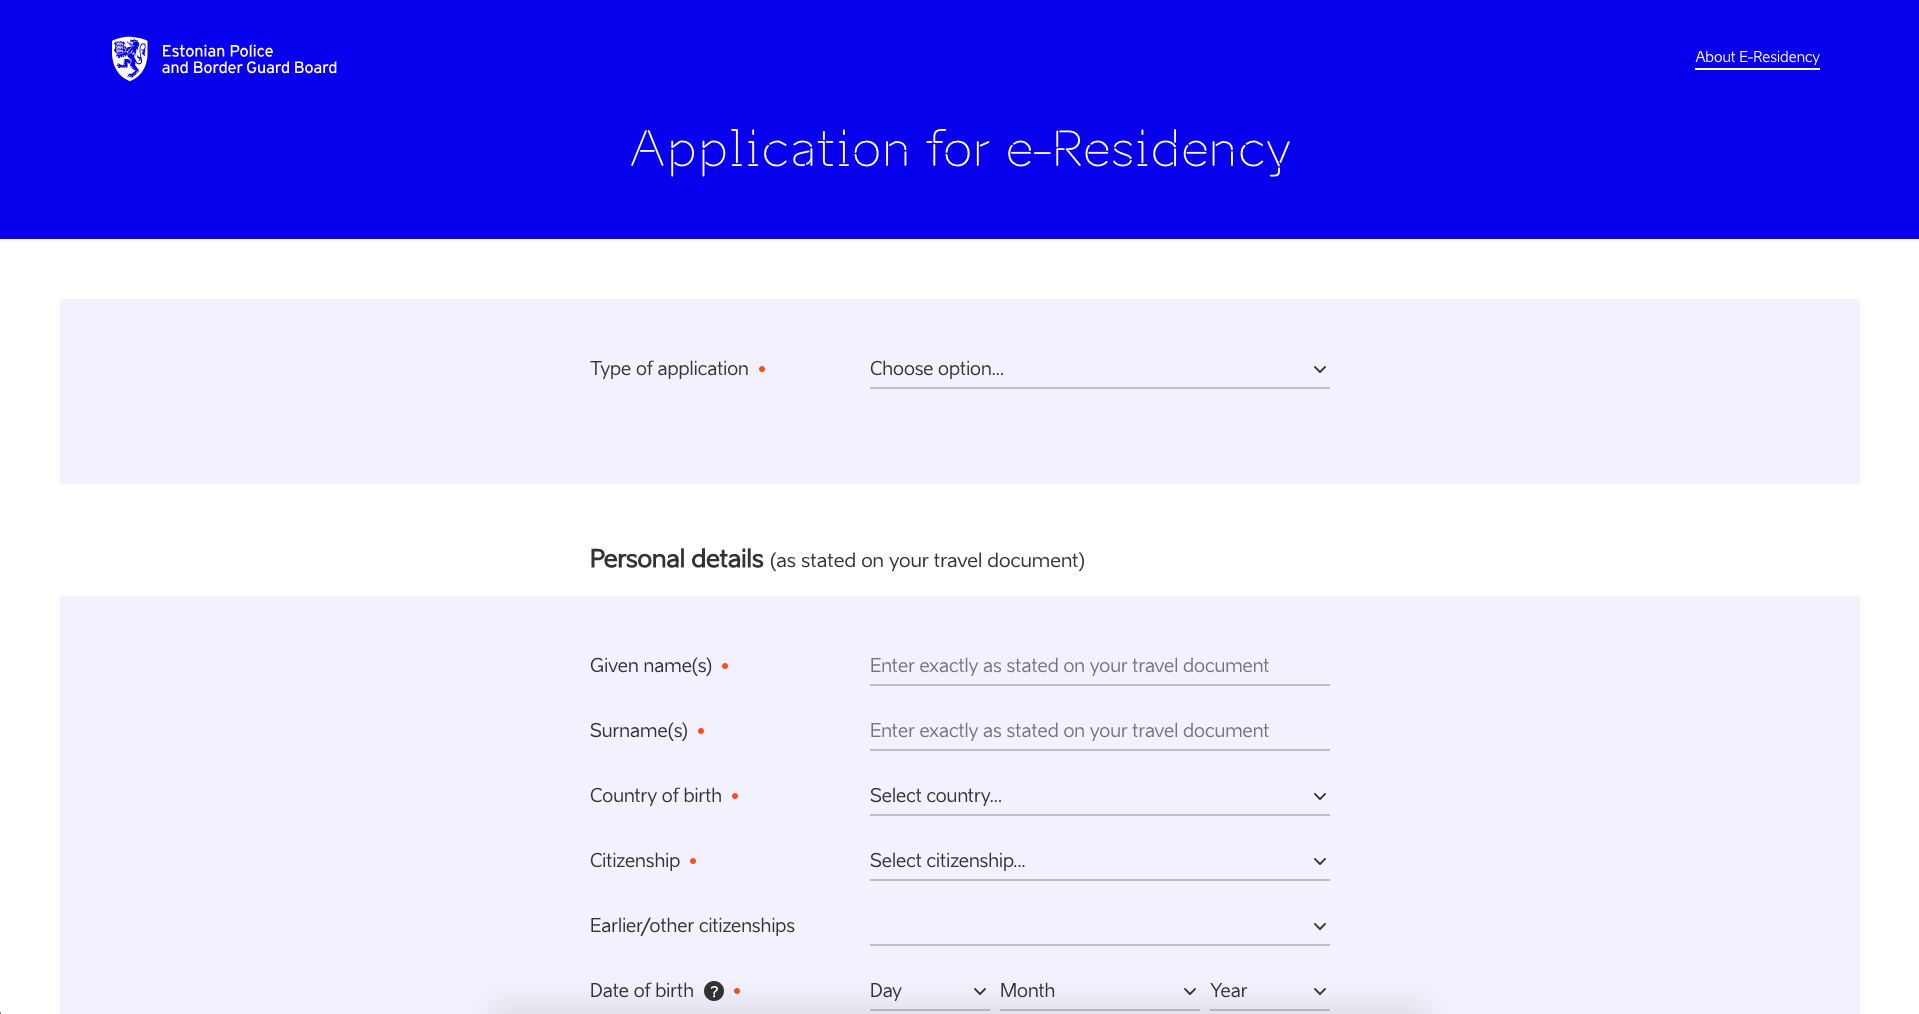 e-Residency application form